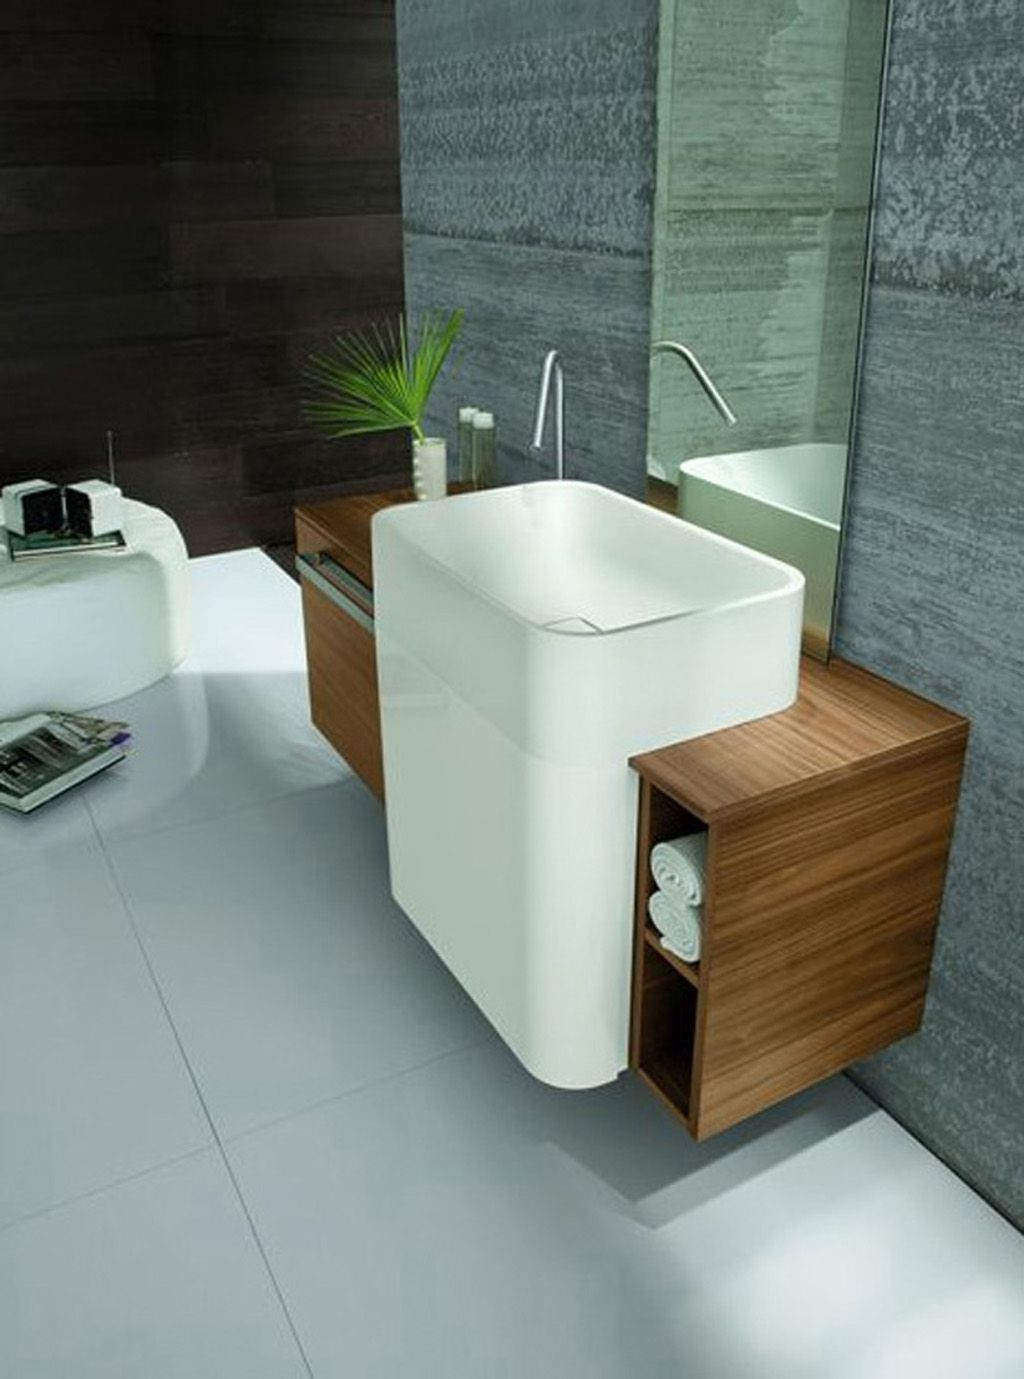 Beautiful How To Choose A Sink For Your Small Bathroom | 卫生间 | Pinterest pertaining to New Designer Bathroom Sinks